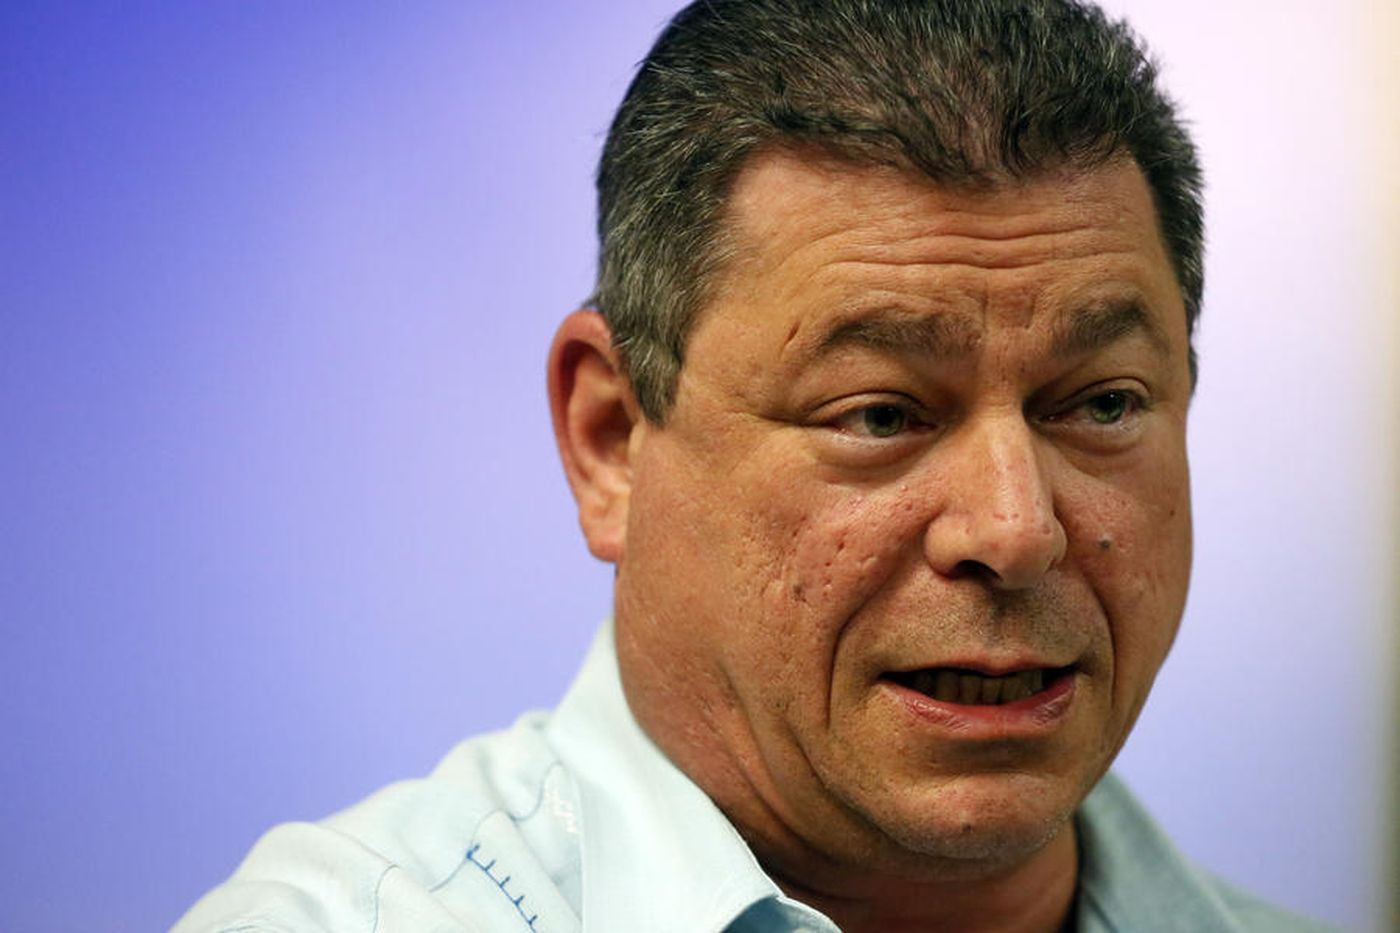 California Democratic Party Chairman Eric Bauman is seen in an undated photo. (Credit: Genaro Molina / Los Angeles Times)